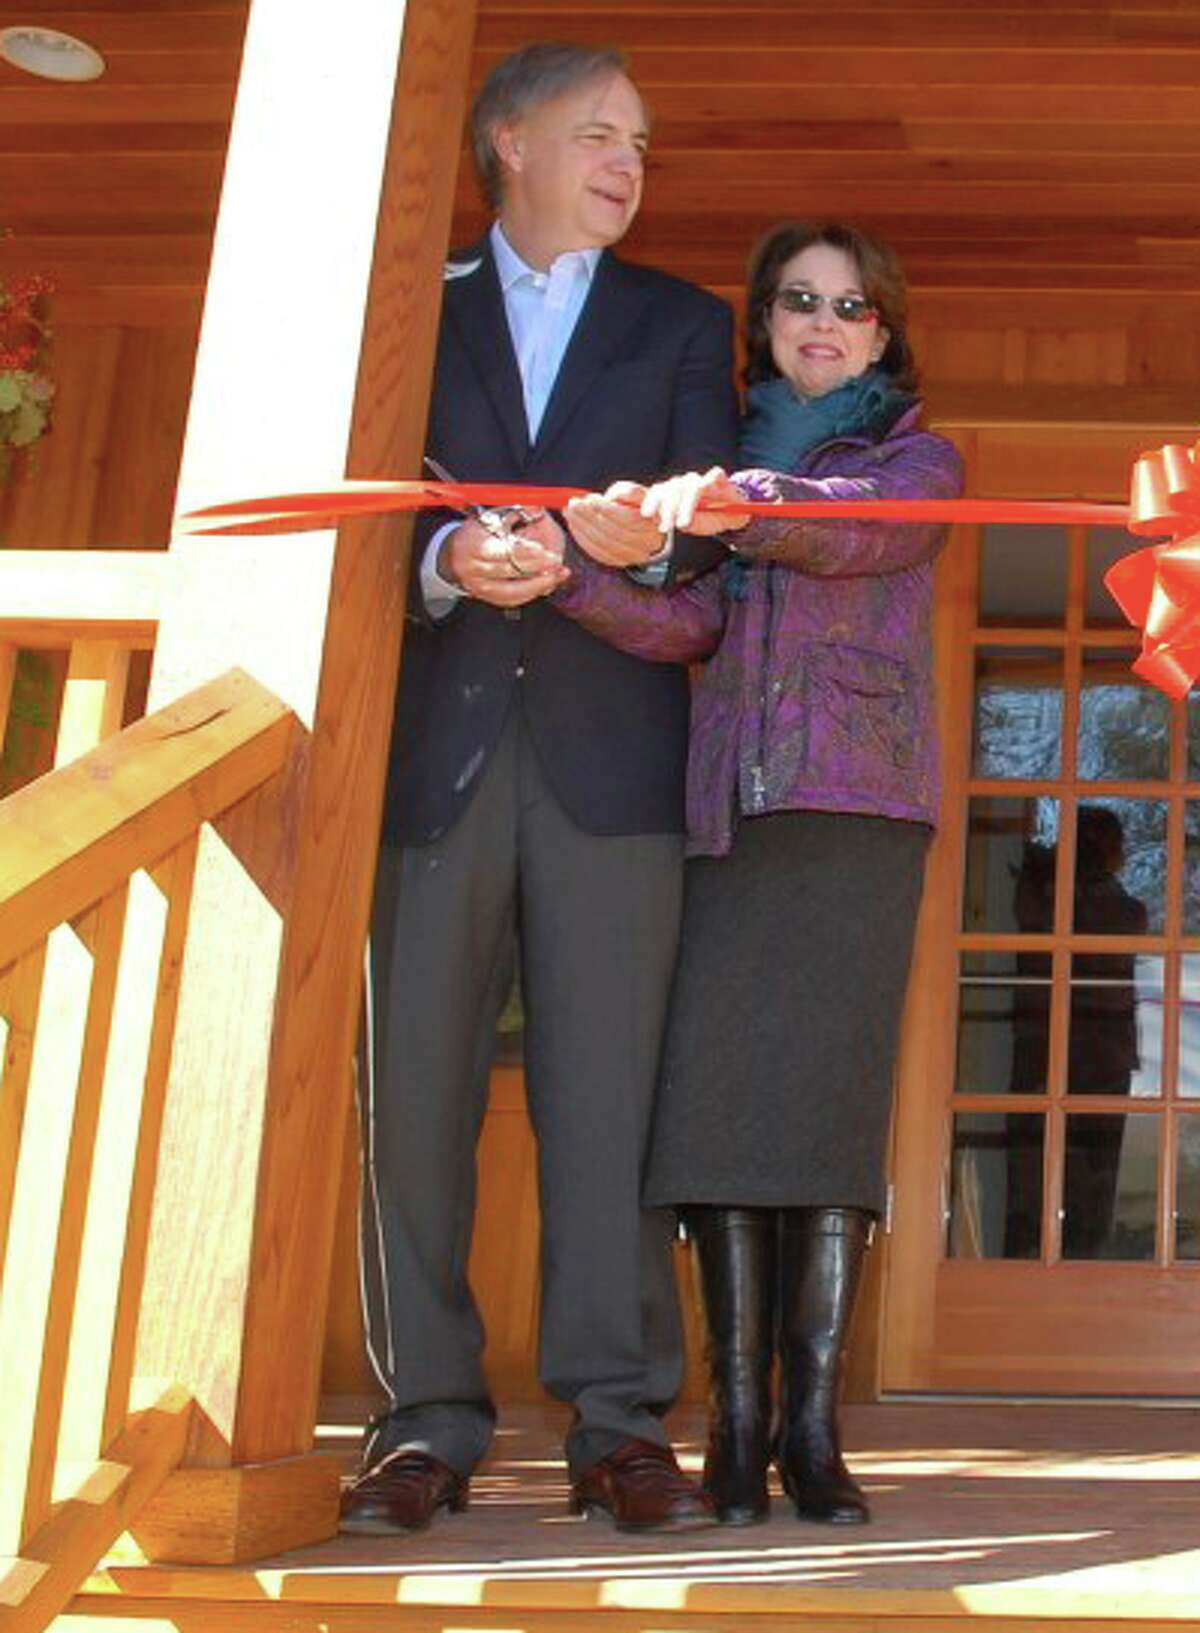 Ray and Barbara Dalio attend the ribbon-cutting for the Bob Neilsen Building at Seton Scout Reservation in Greenwich in 2010.